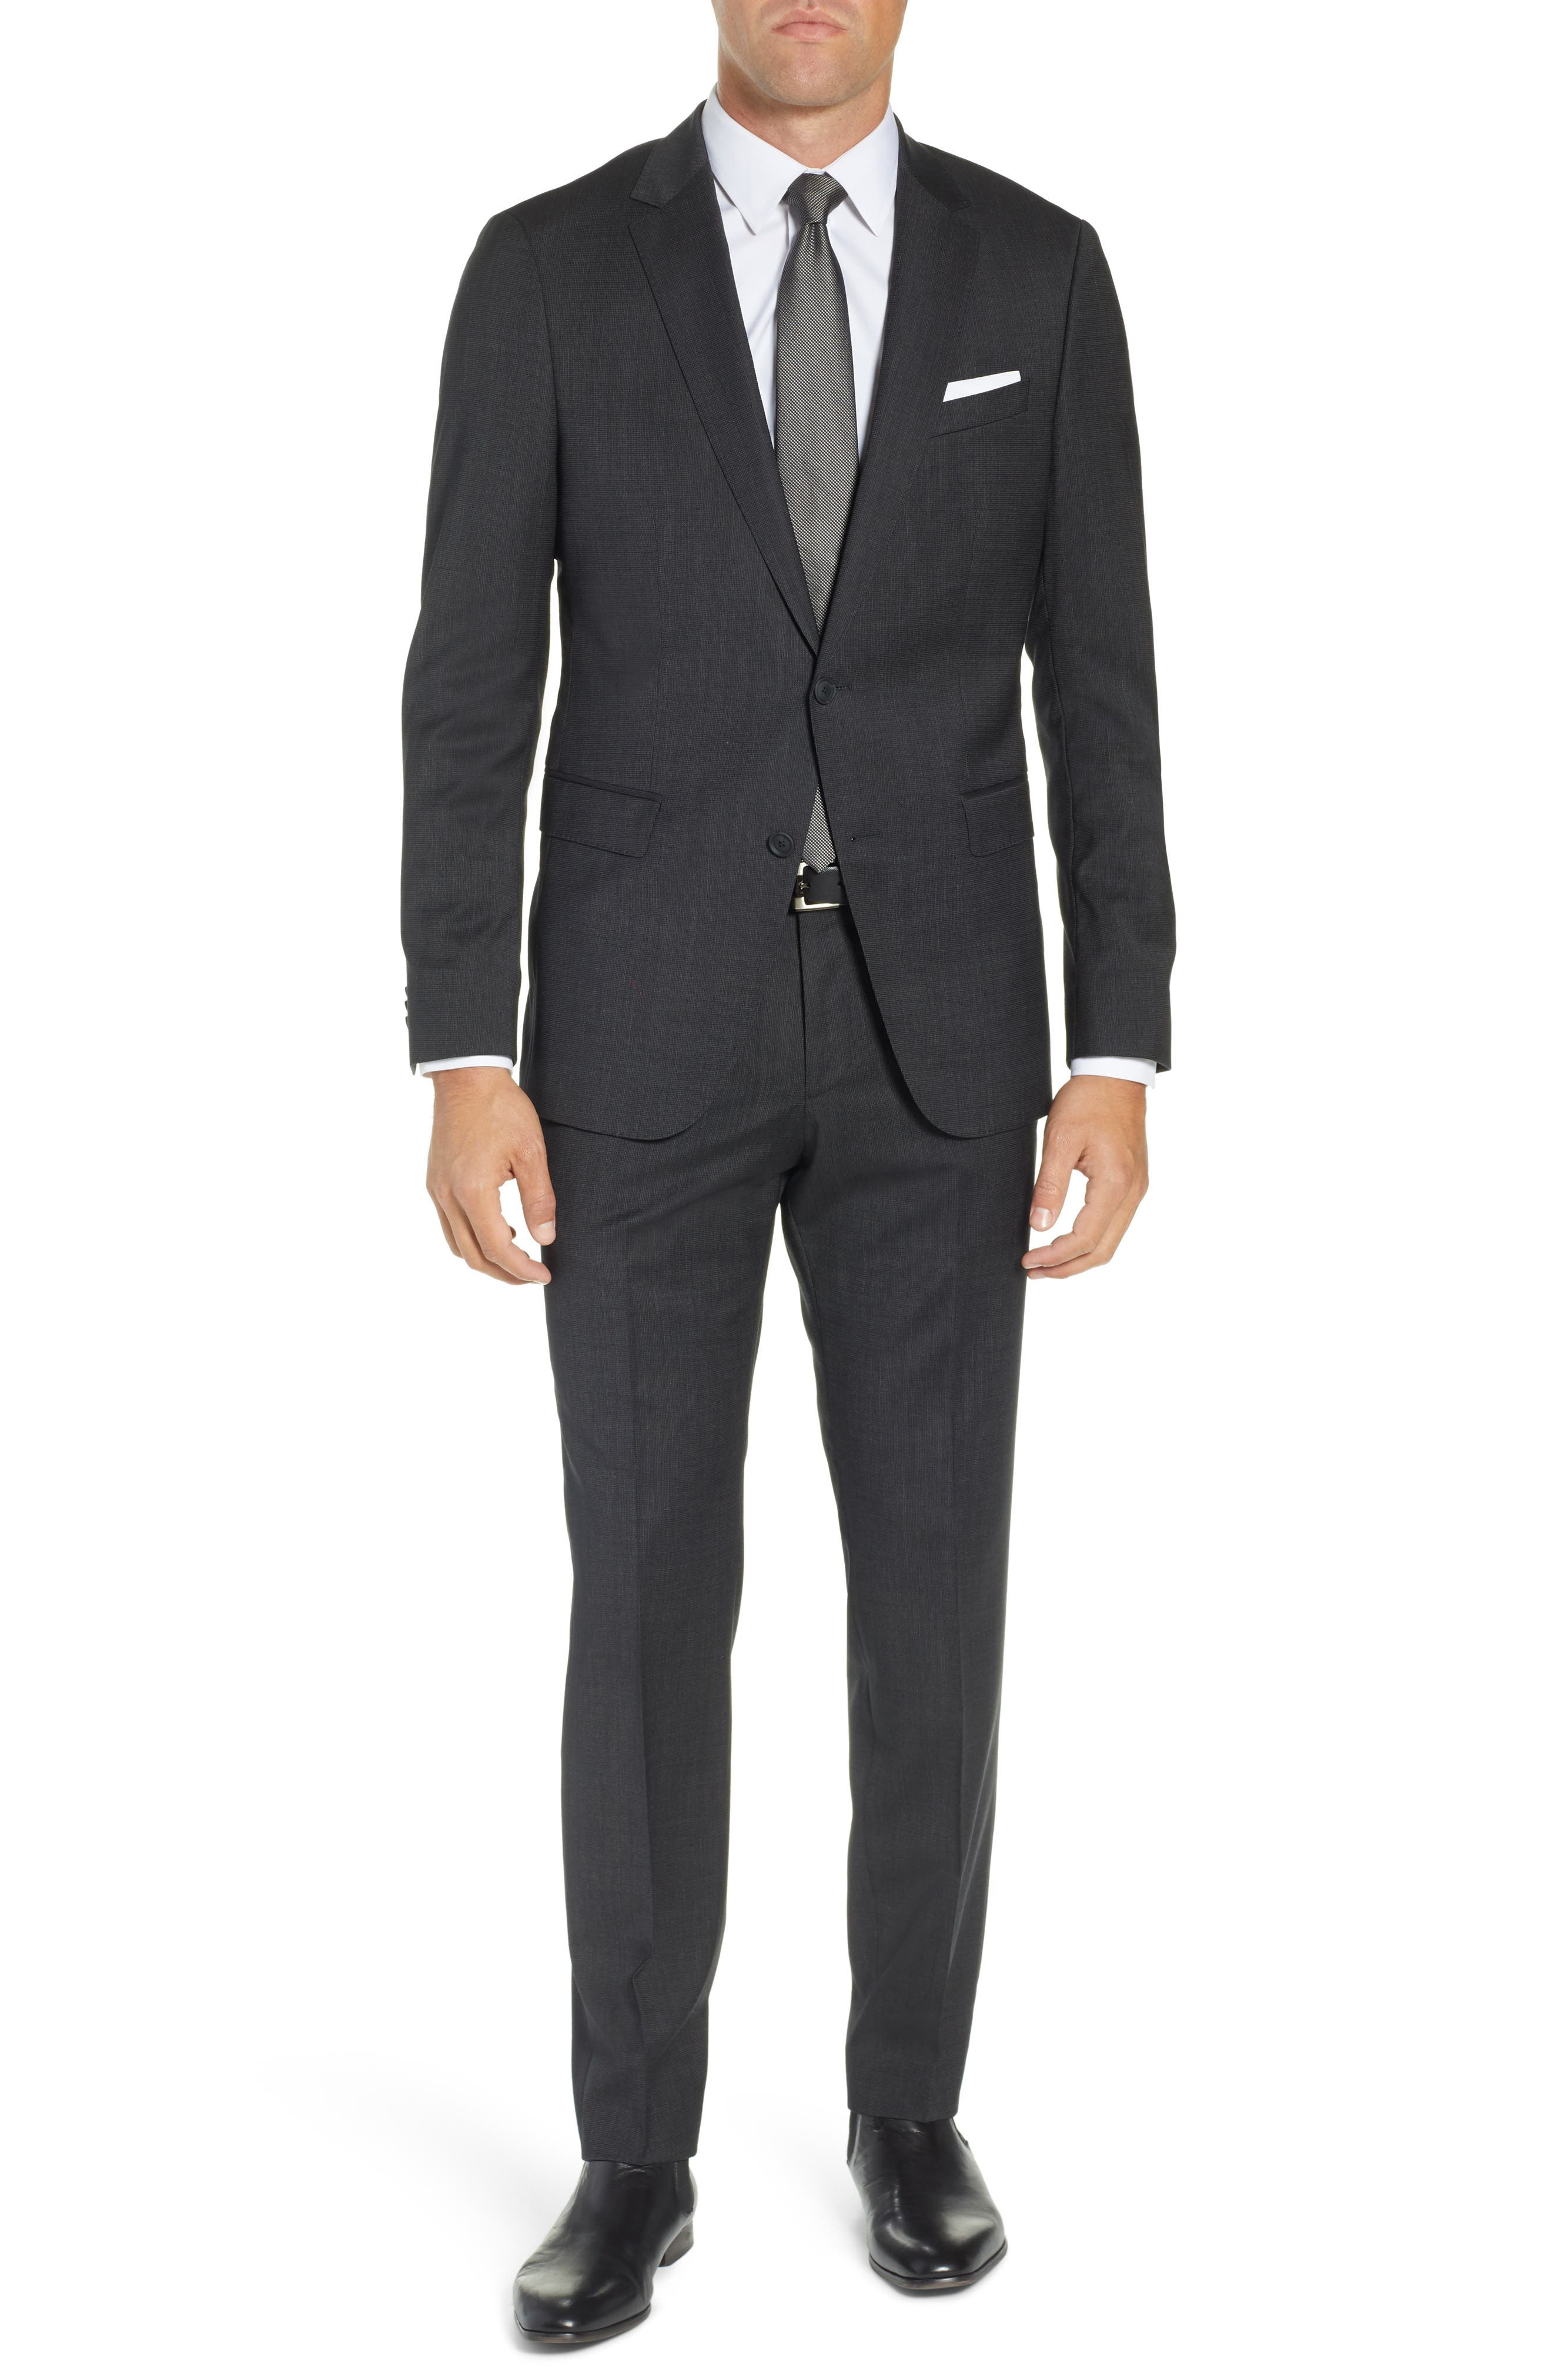 BOSS, Nestro/Byte Trim Fit Stretch Solid Wool Suit, Main thumbnail 1, color, 001